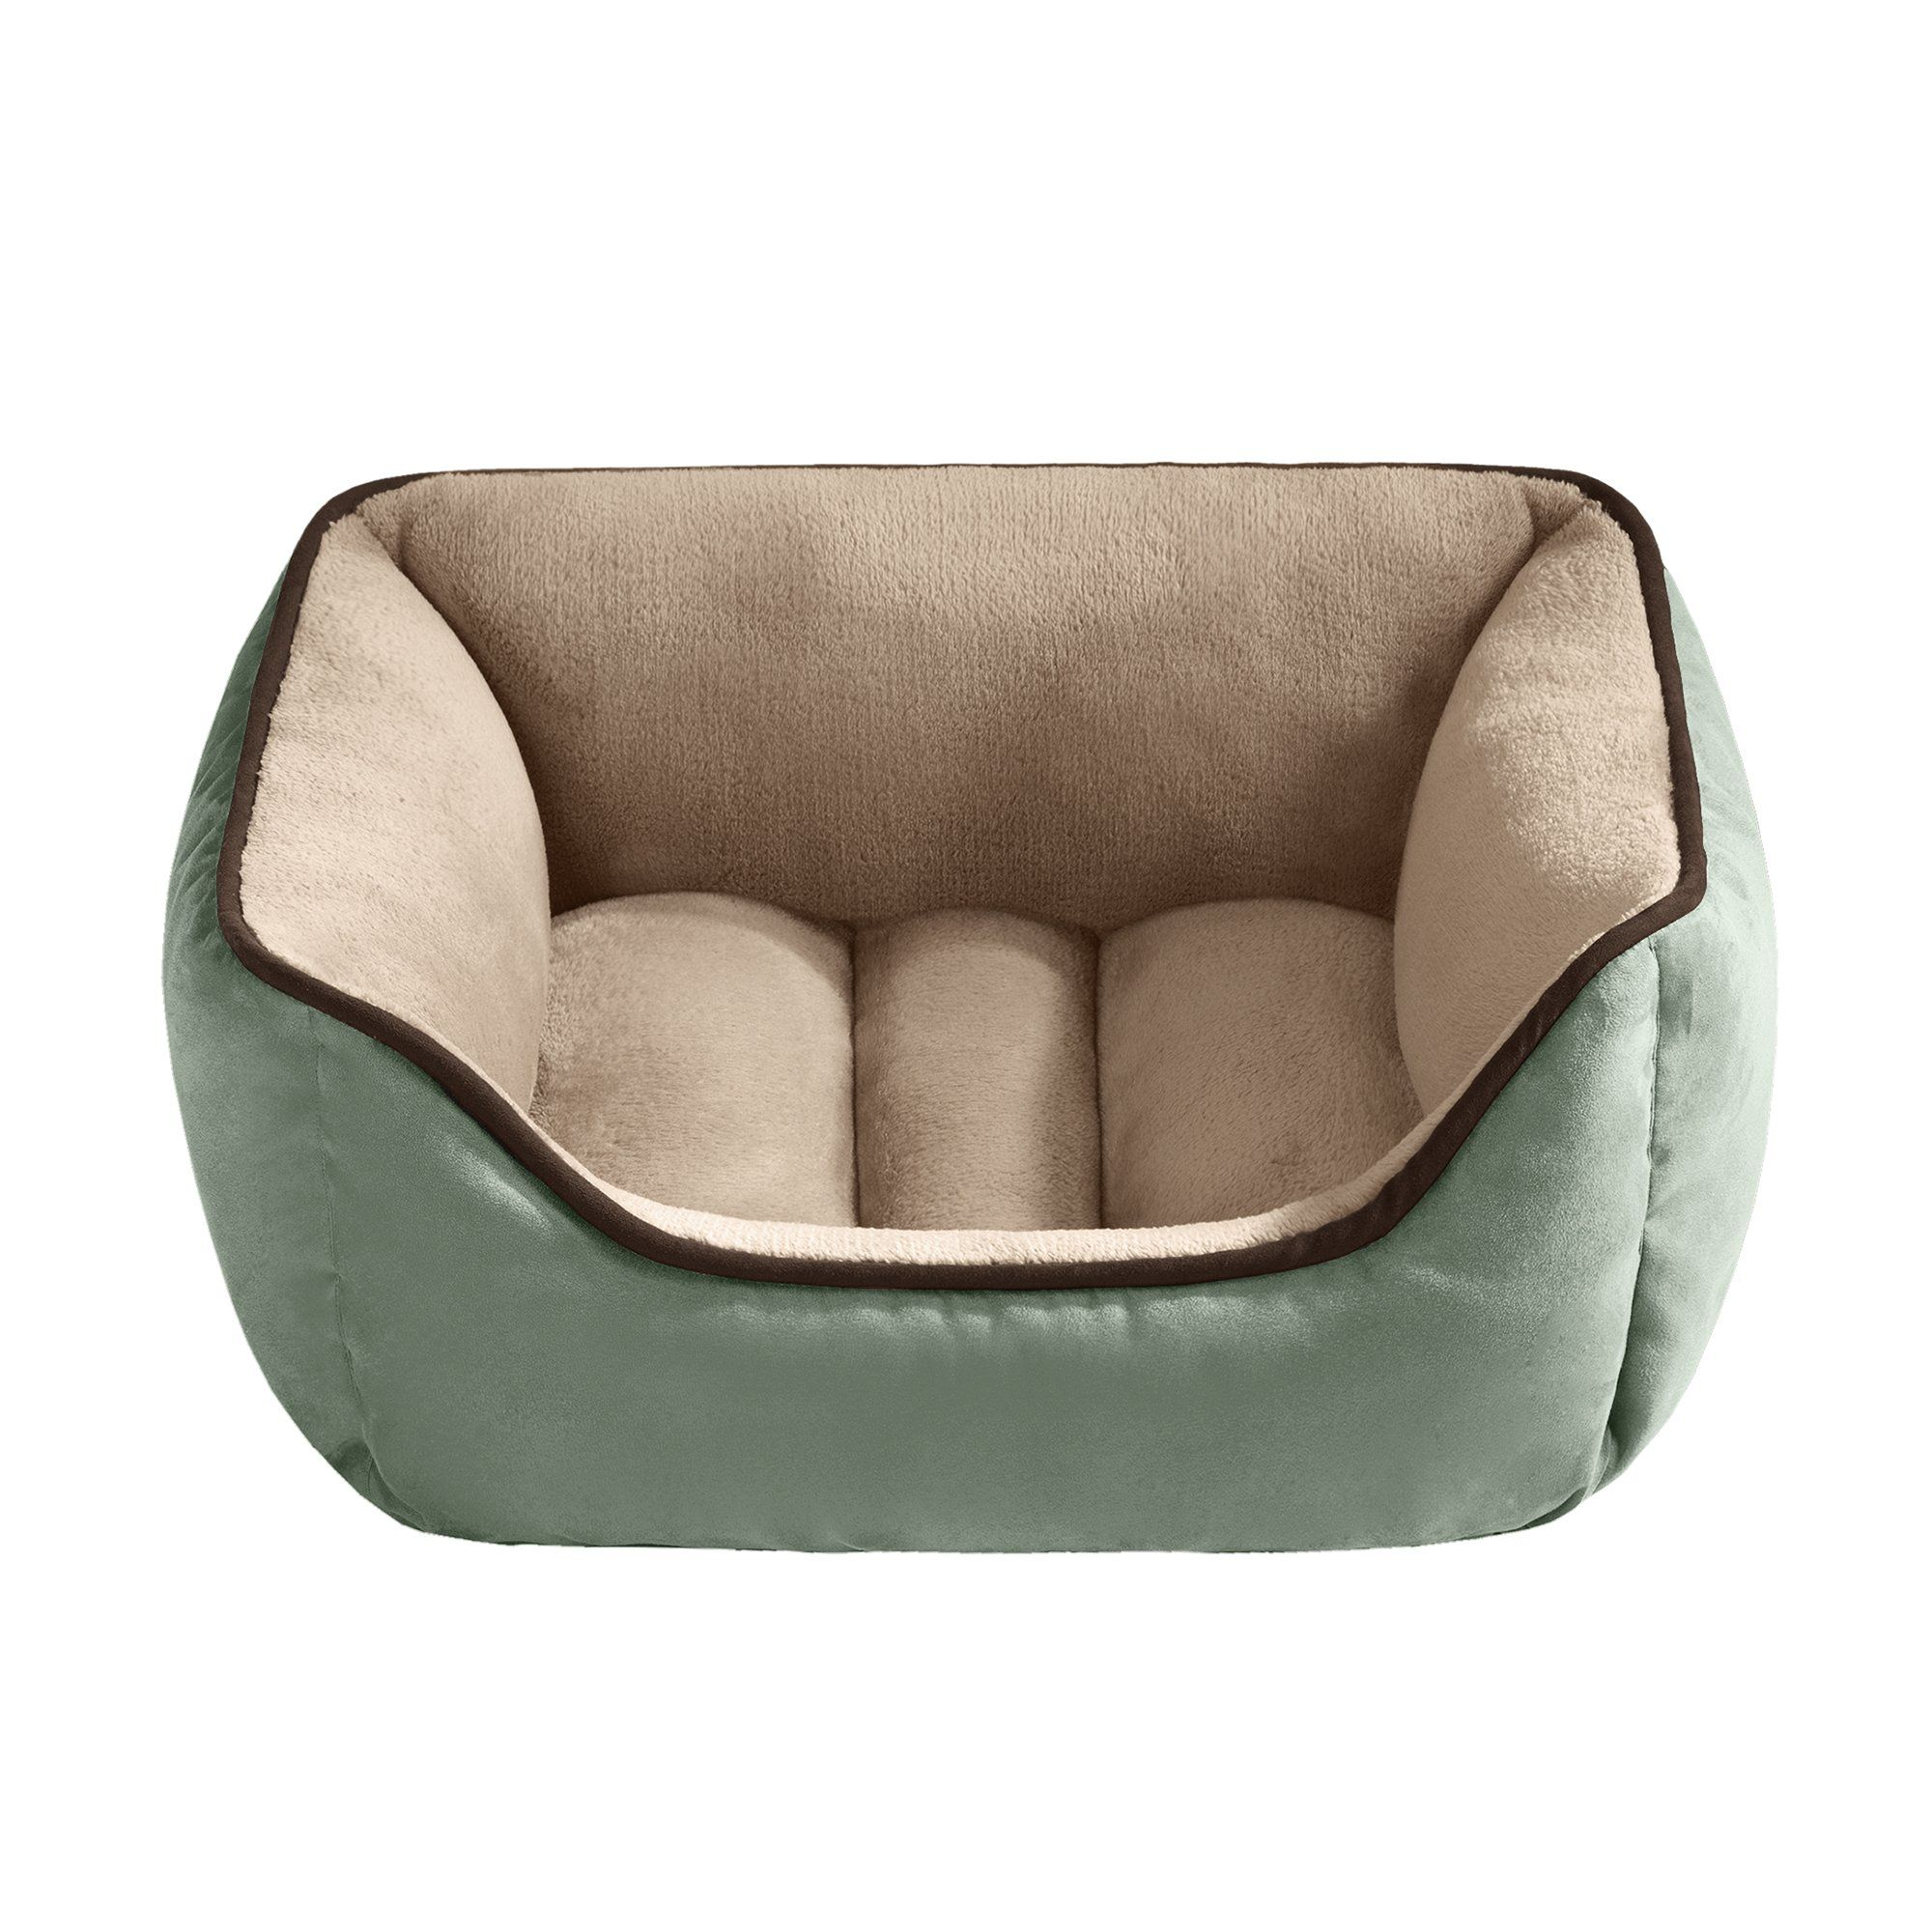 en product harmony round bed beds textured cat tan petco center in shop petcostore dog